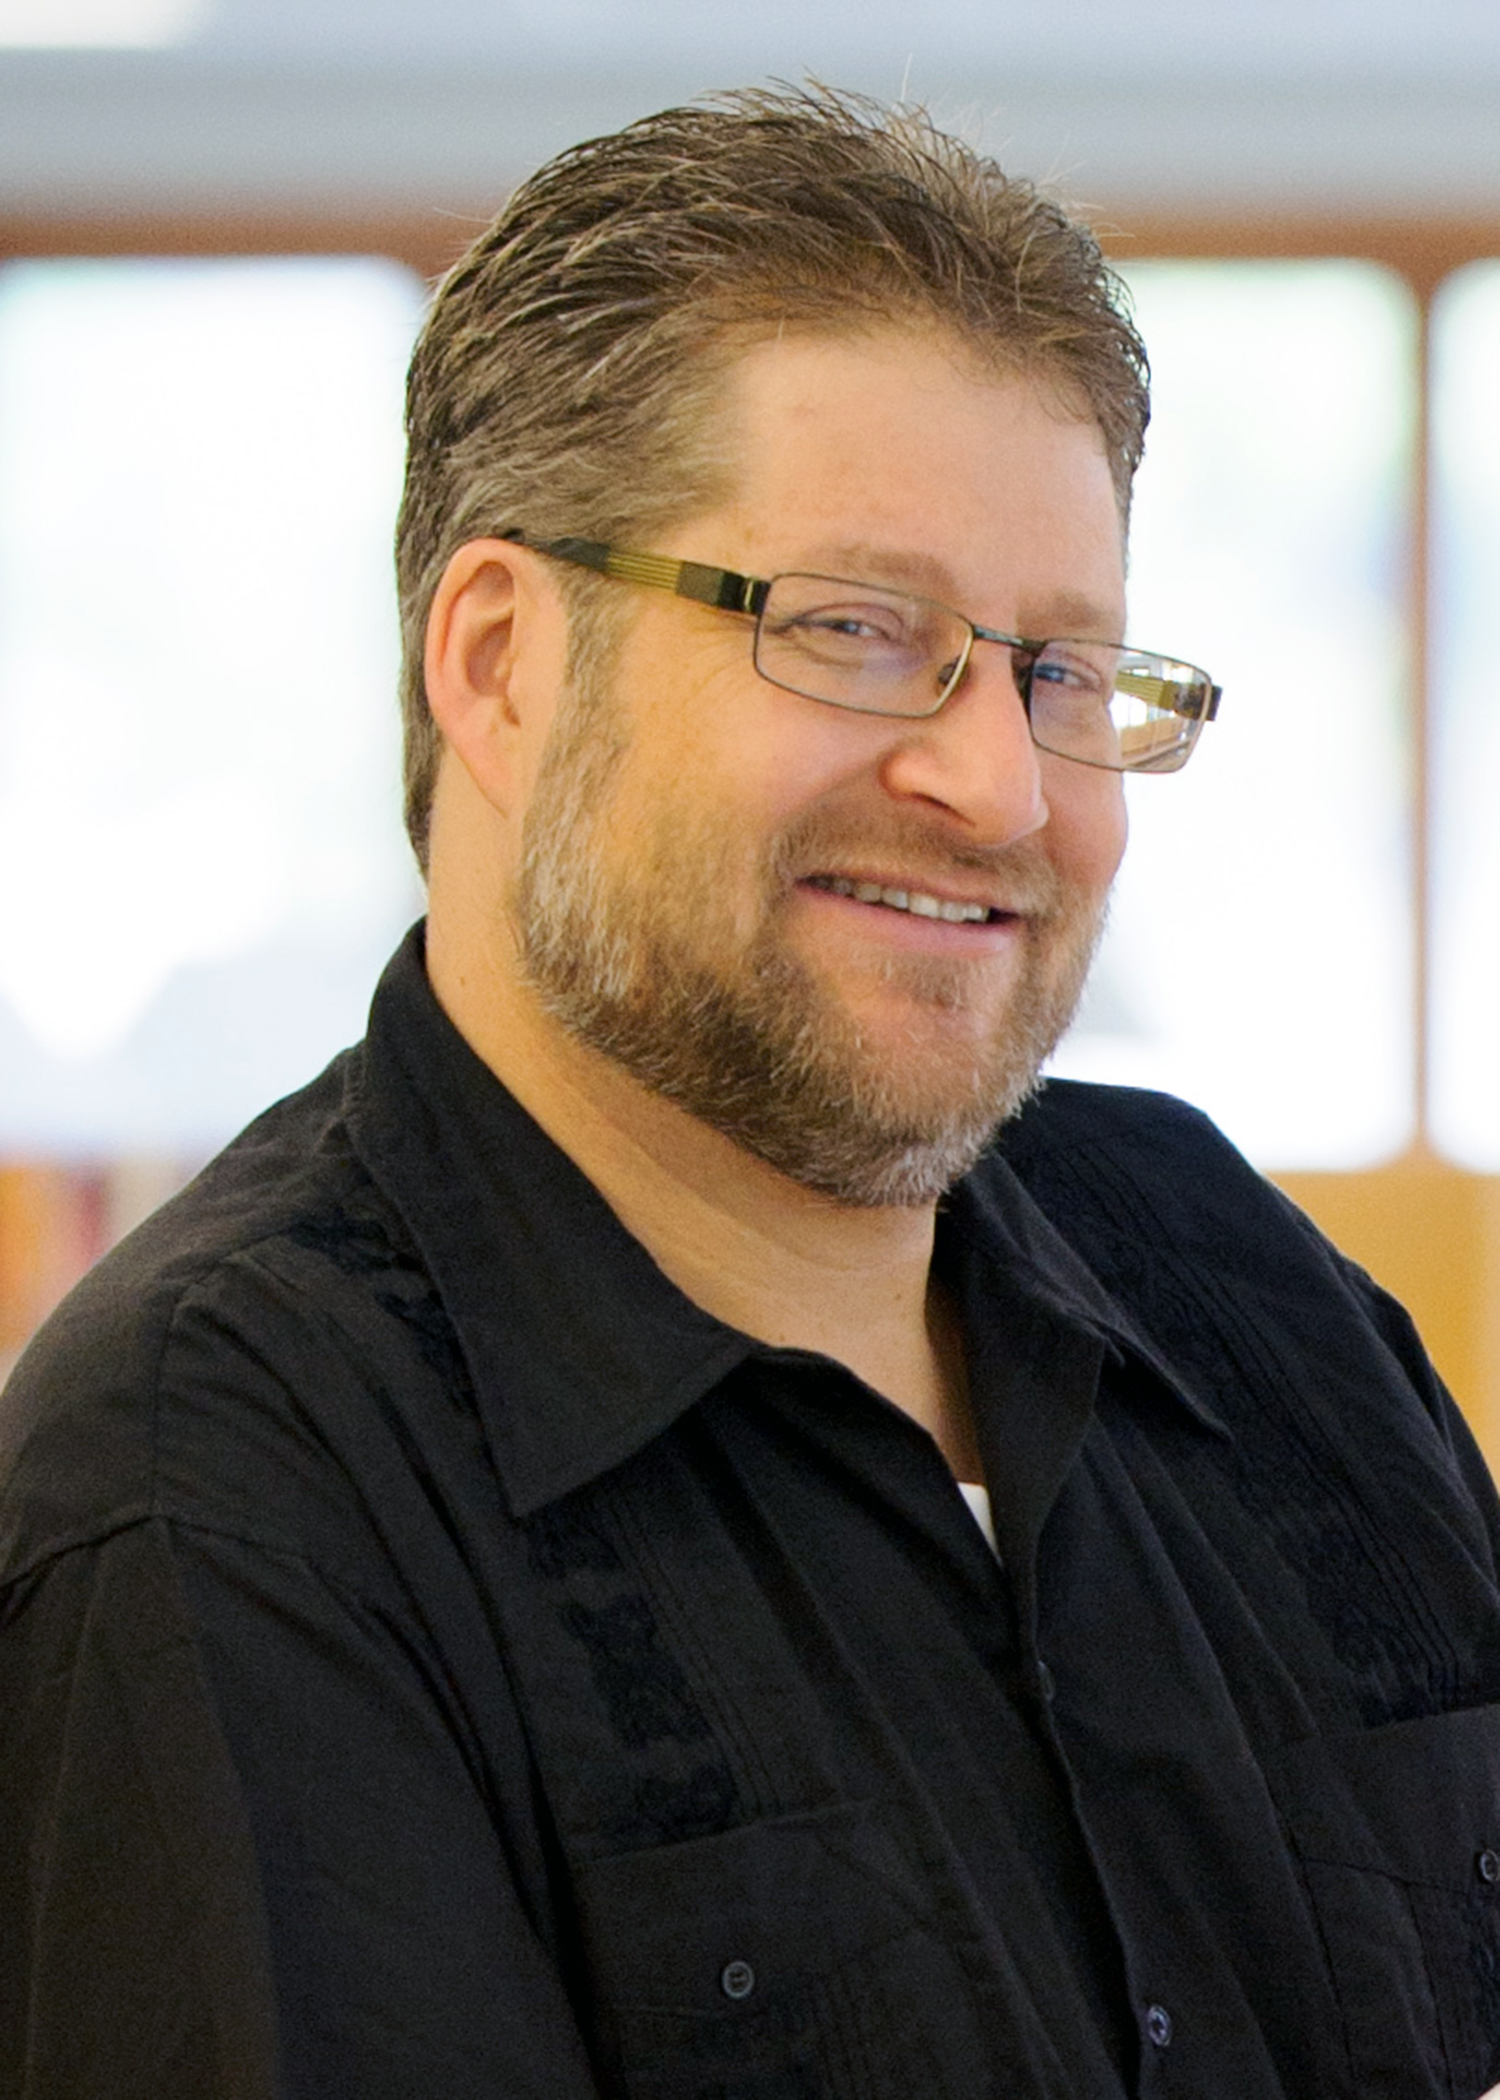 Andy Brubacher Kaethler, Assistant Professor of Christian Formation and Culture